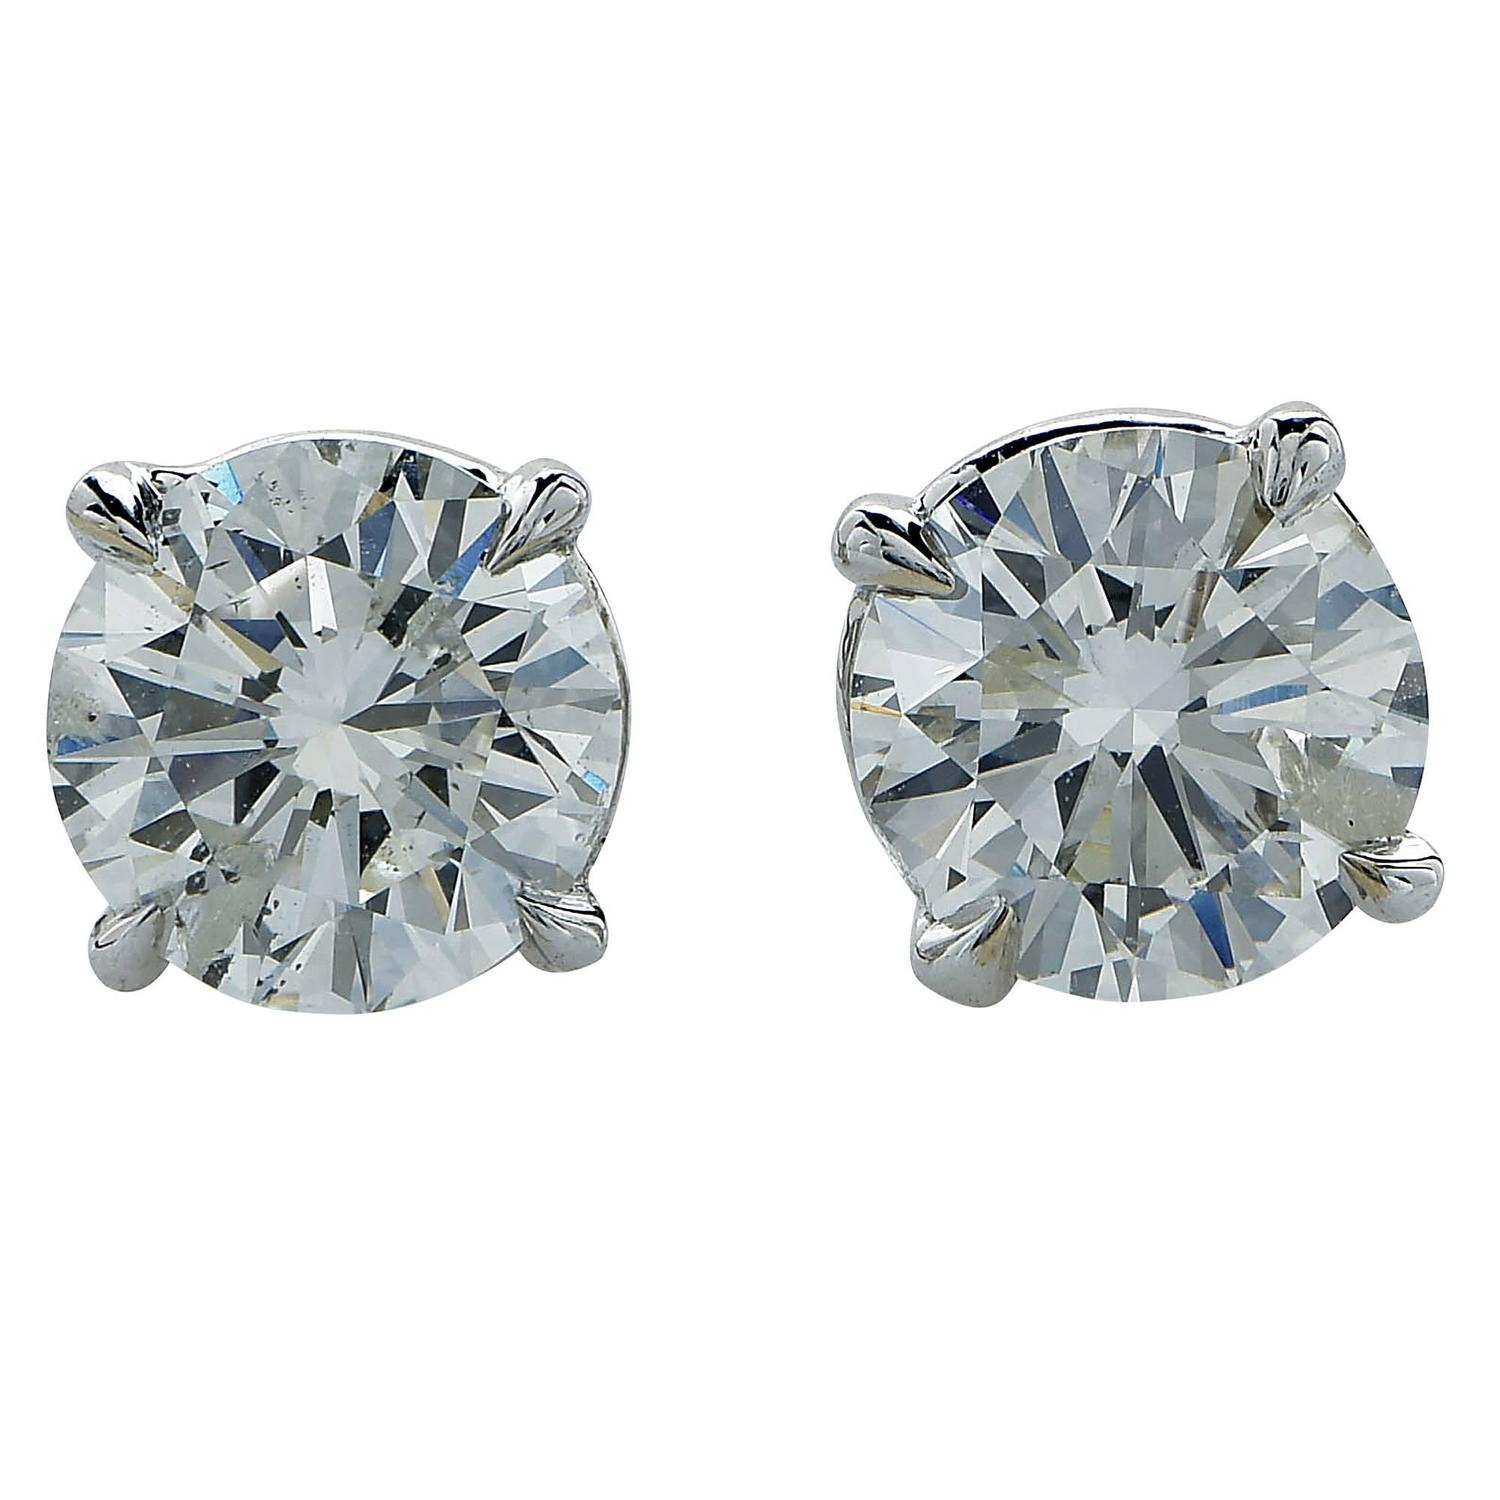 1 carat stud earrings sale 1 87 carat solitaire stud earrings for sale at 1stdibs 9098